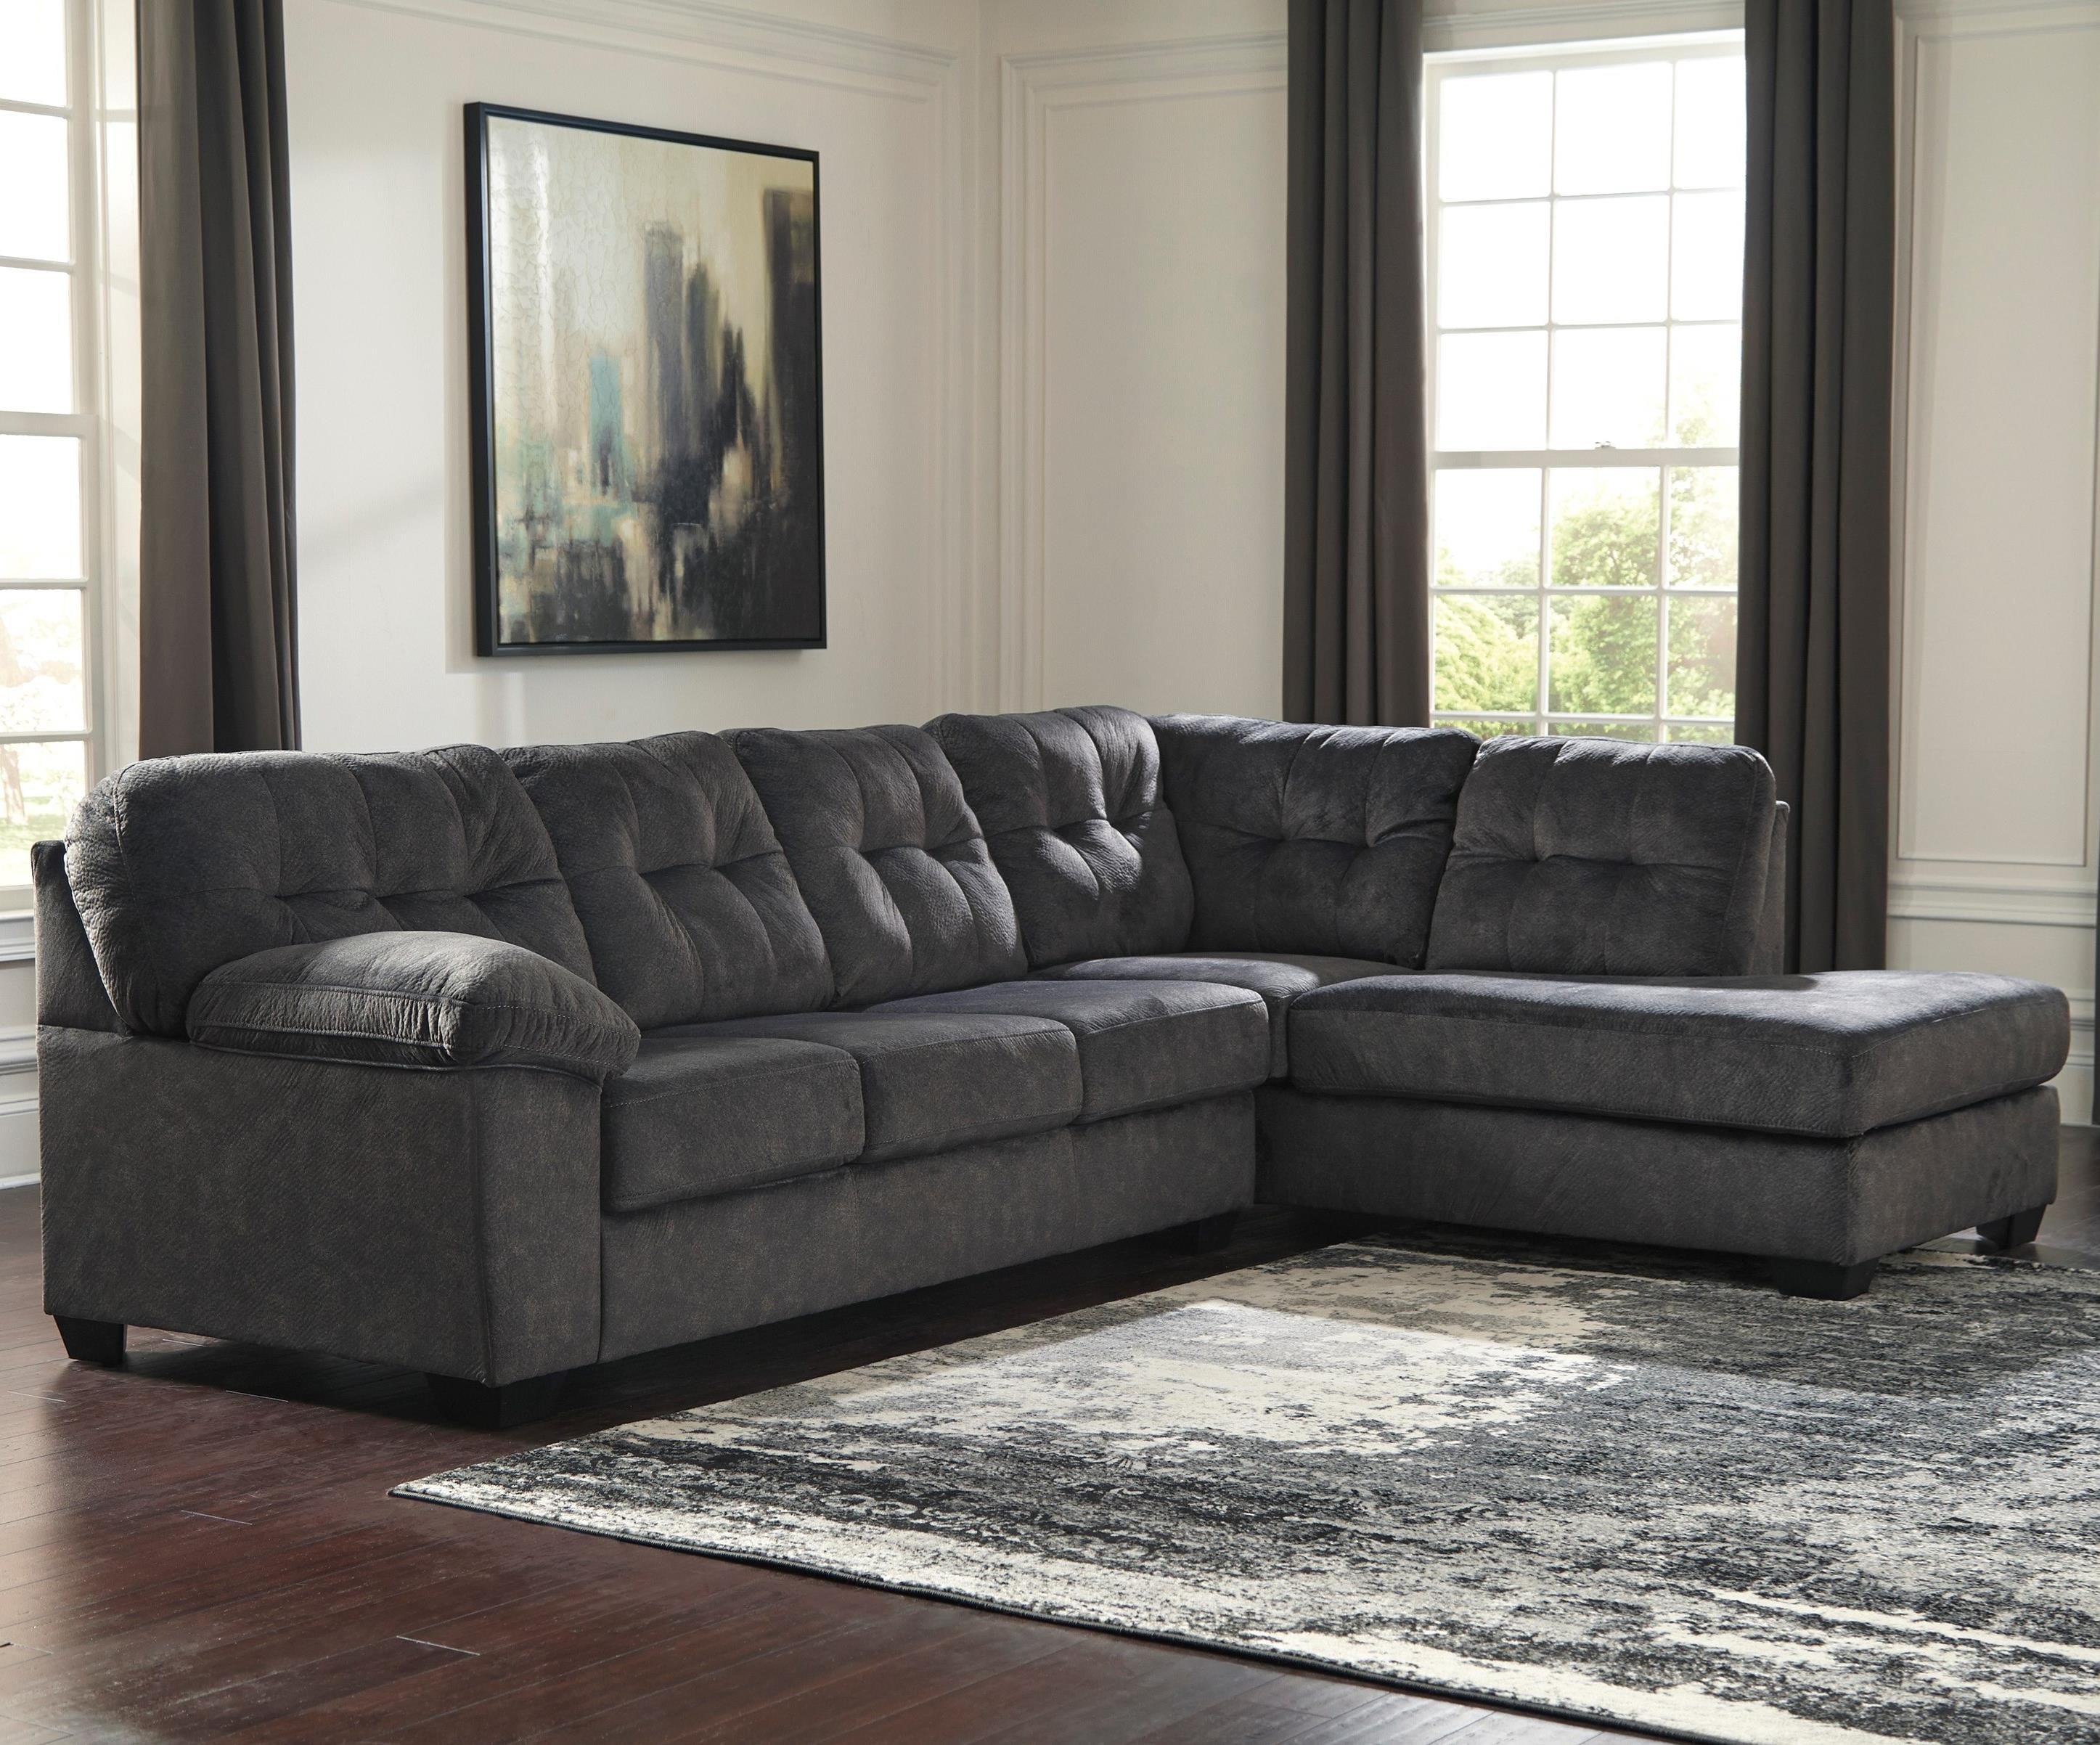 Signature Design by Ashley Accrington Sectional with Right Chaise & Queen Sleeper - Item Number: 7050969+17